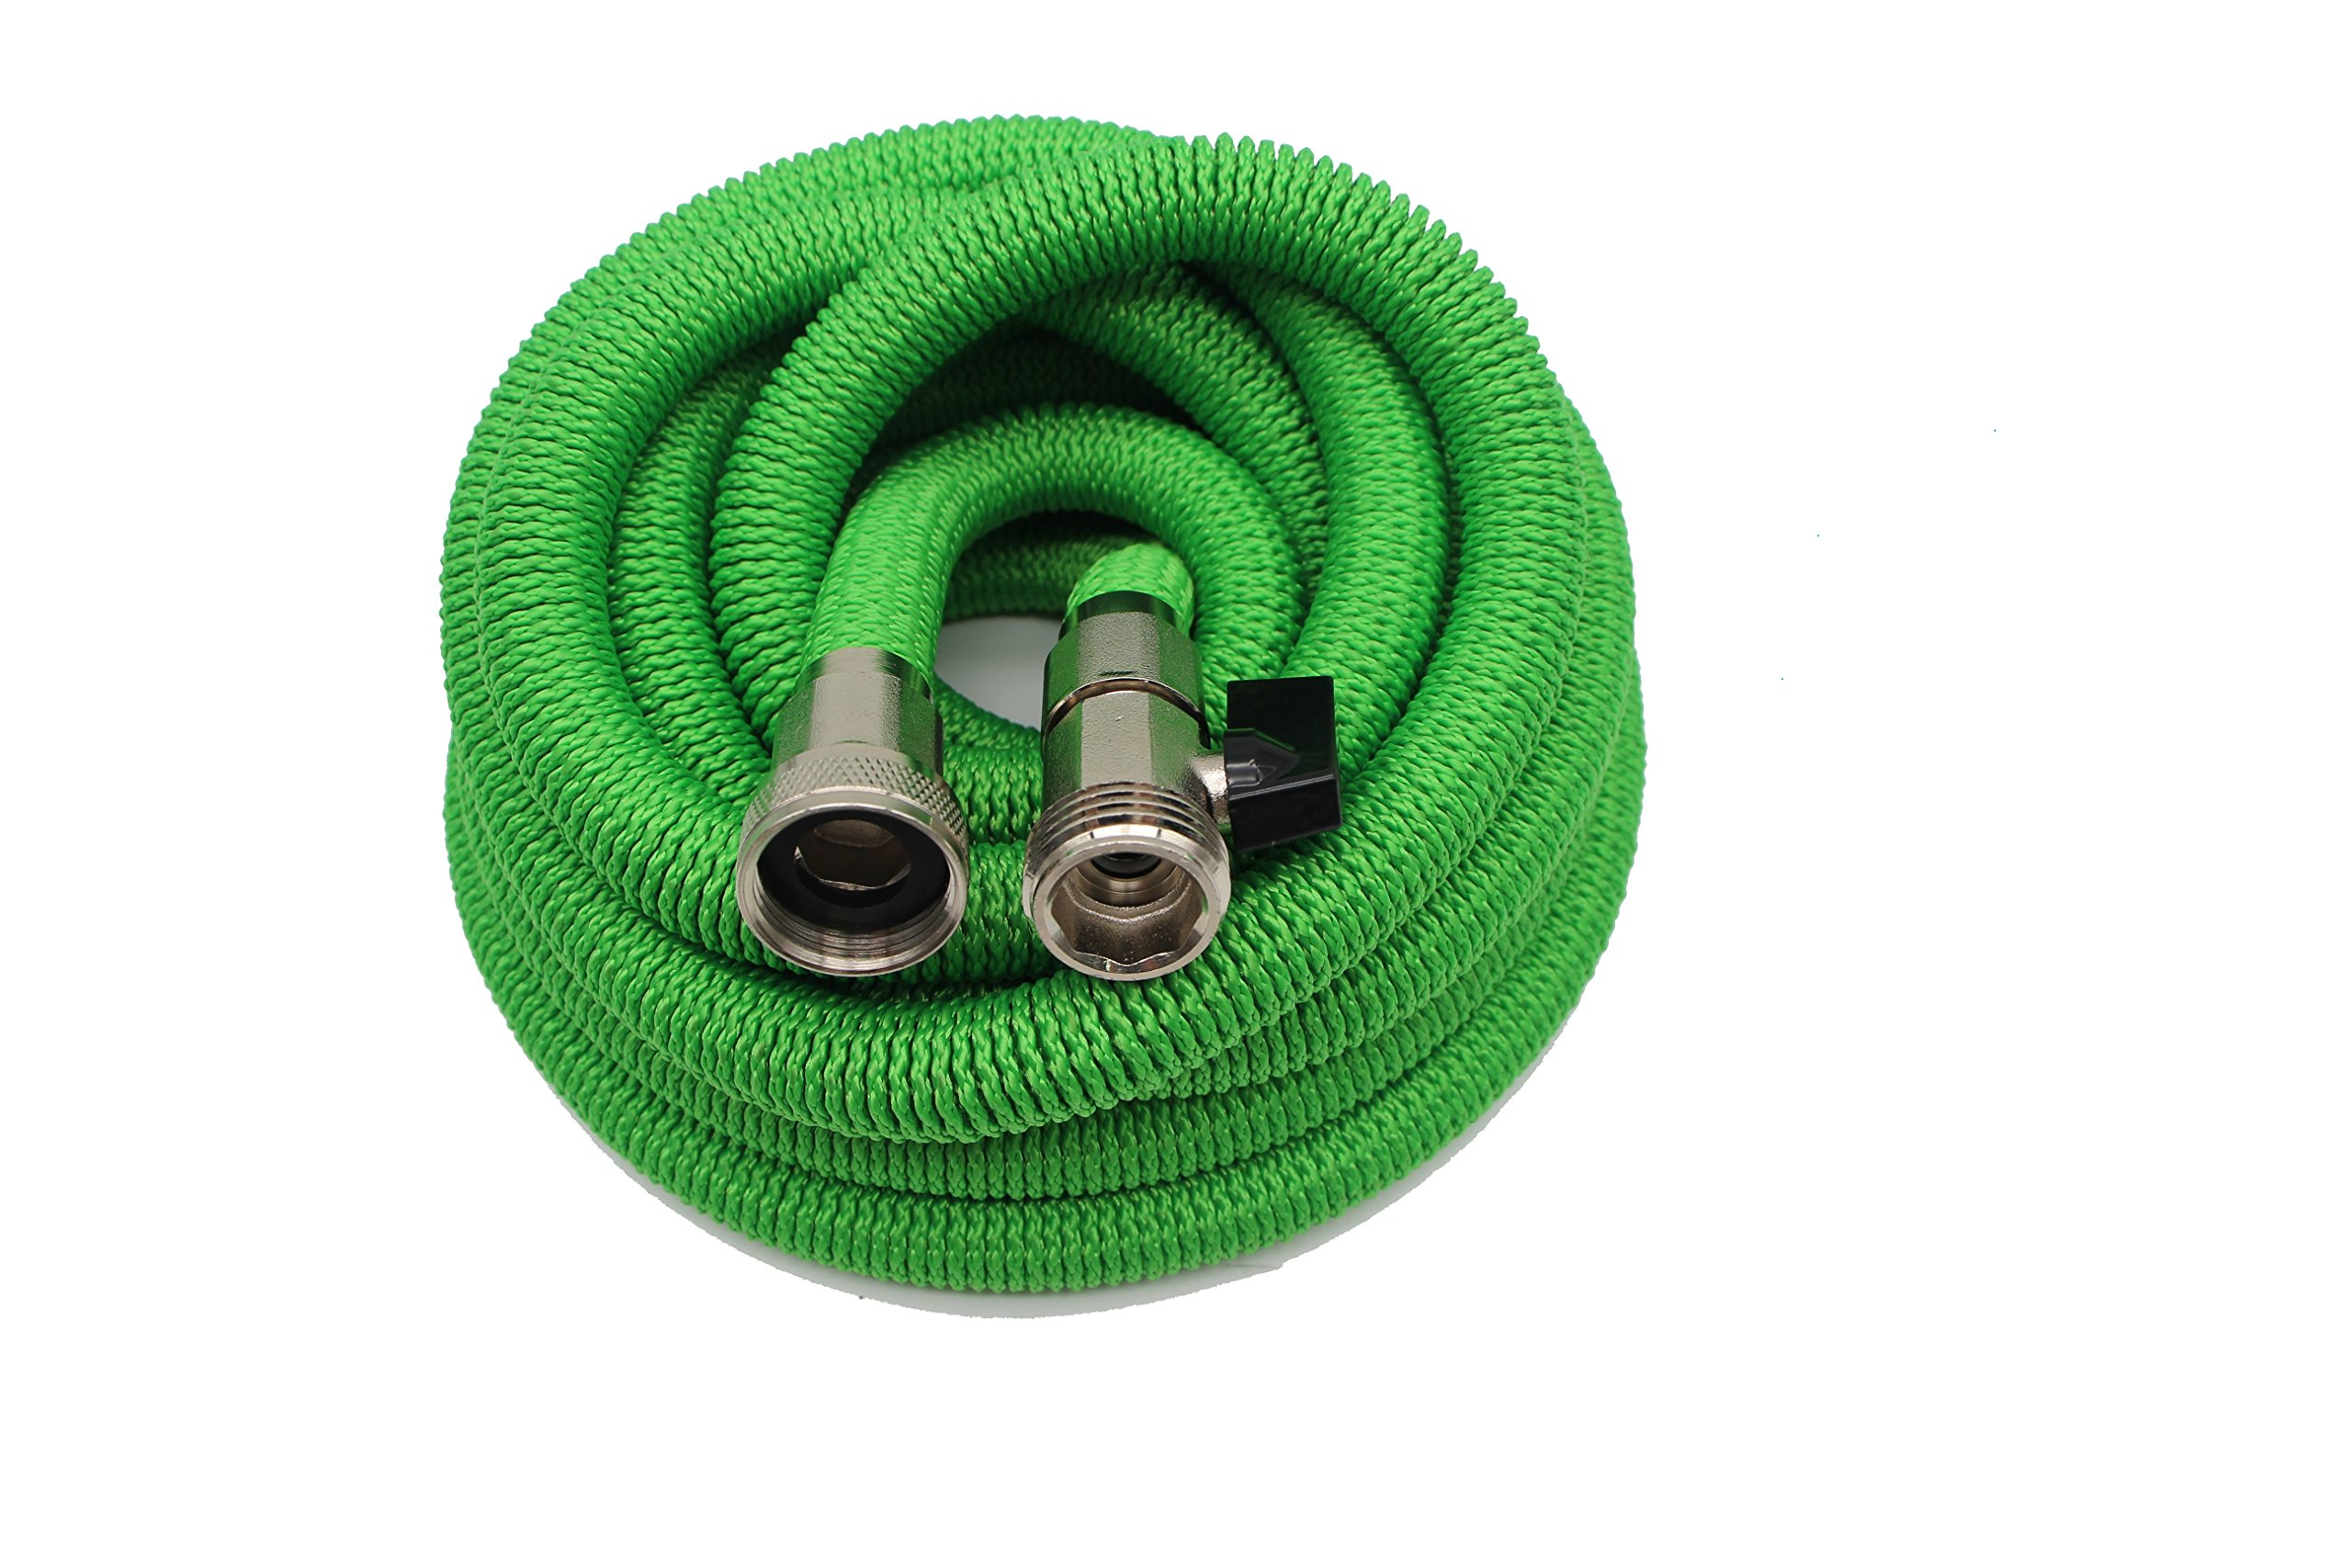 New 2018 Expandable Garden Hoses- Outdoor Hose Expands up to 50FT, Lightweight & Durable, Retractable Hose Will Not Kink, Tangle or Burst, Easily Portable with FREE Storage Bag